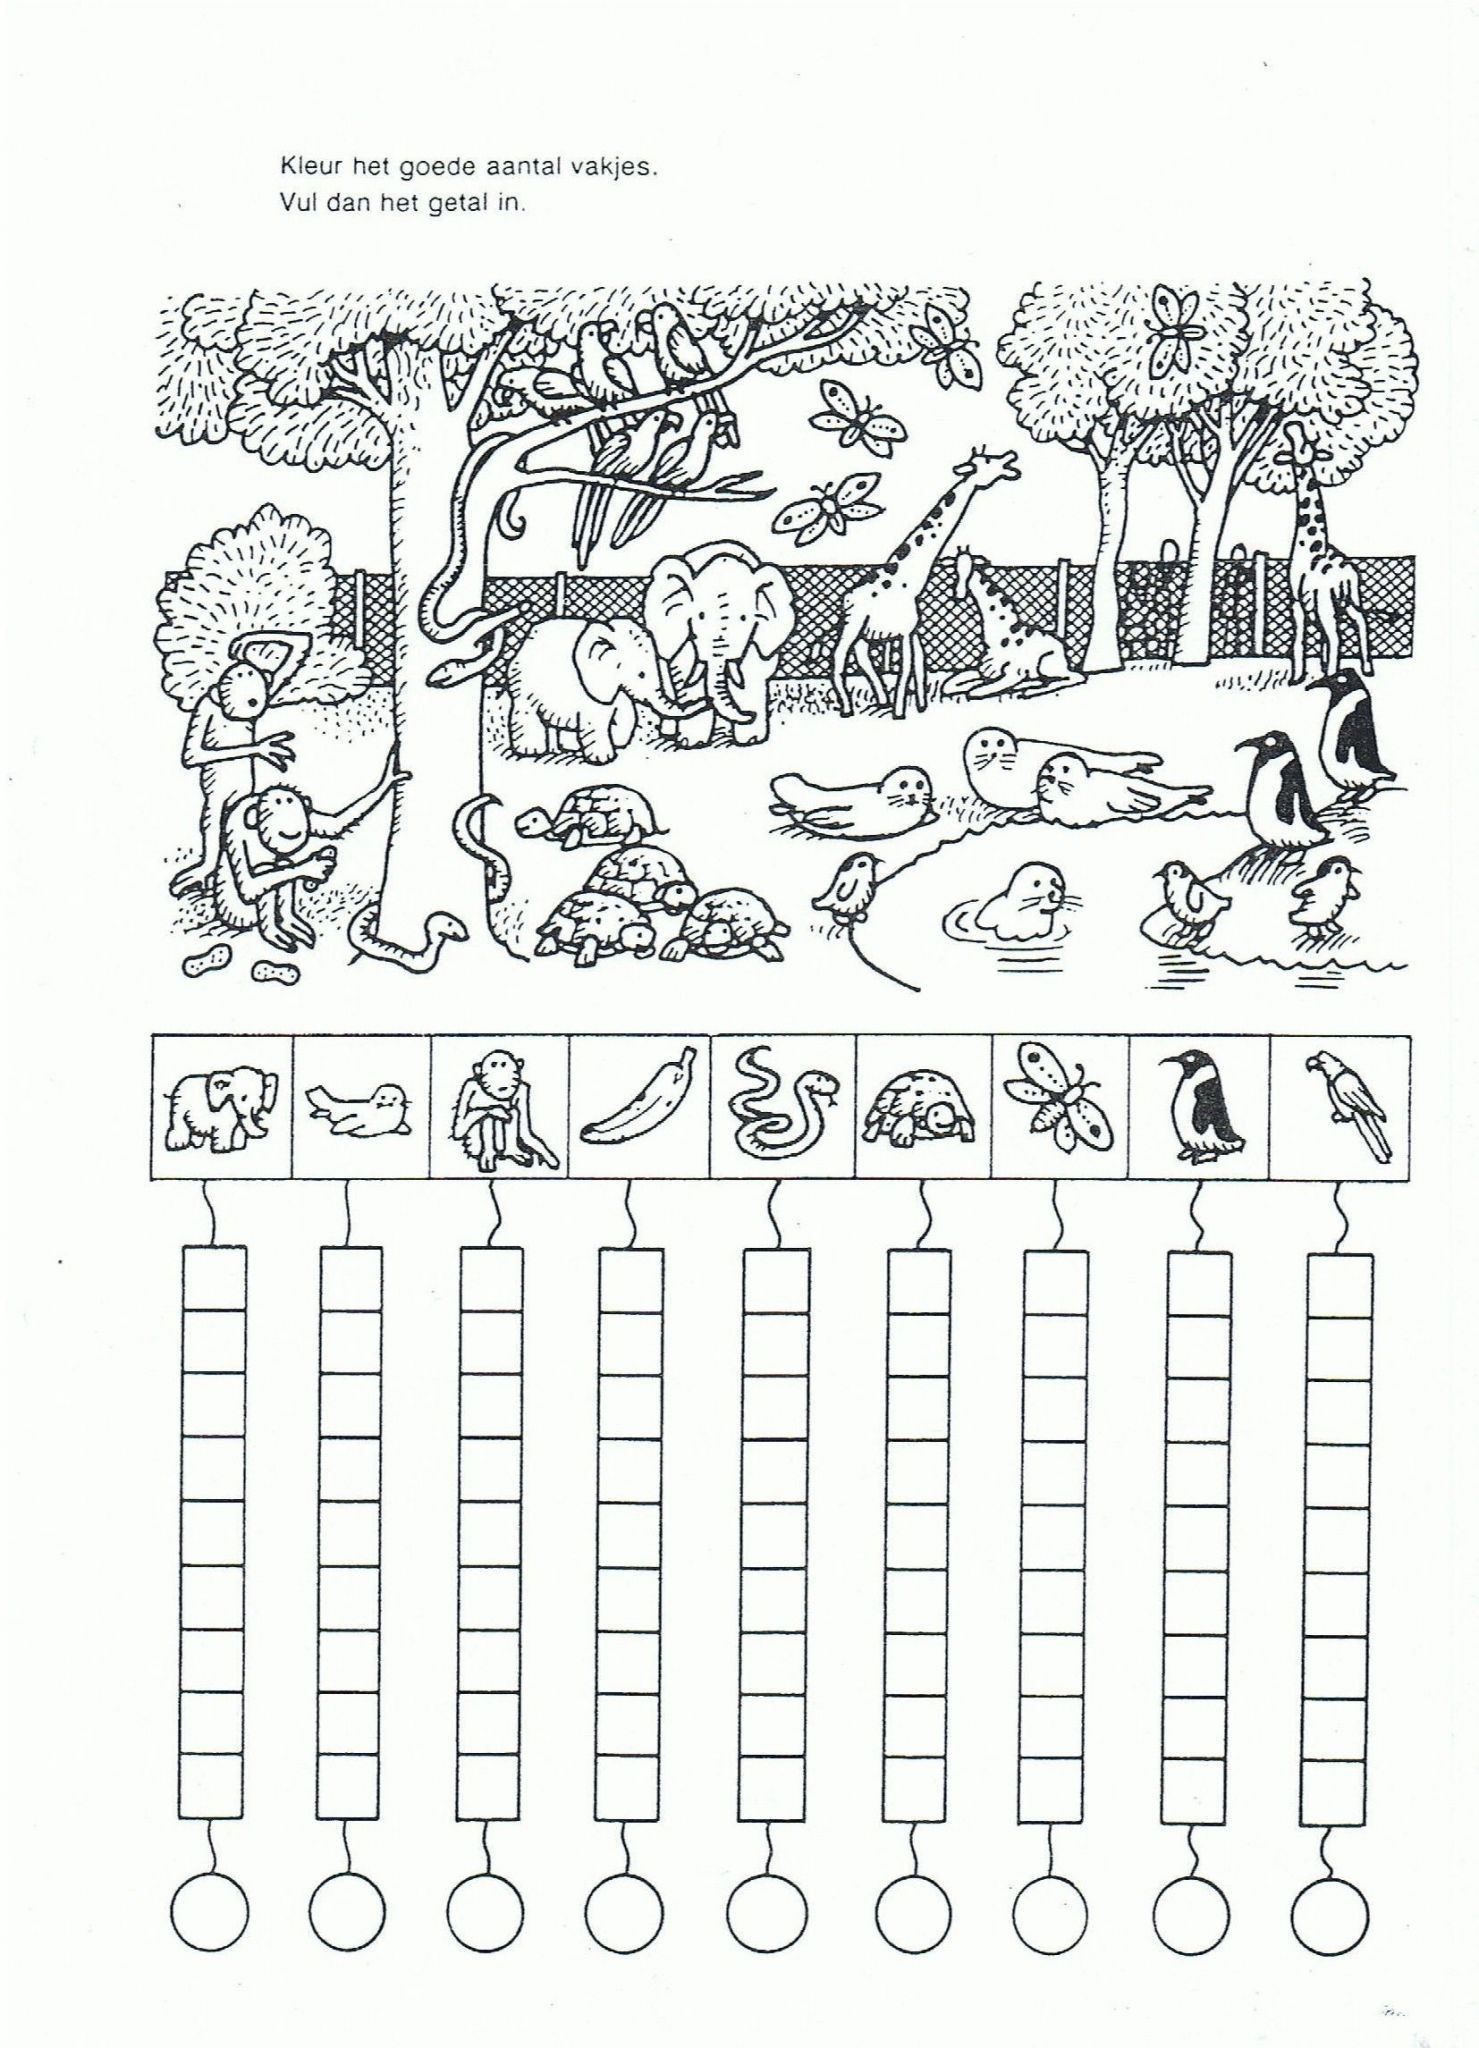 New Preschool Worksheets Age 3 With Images Science Worksheets